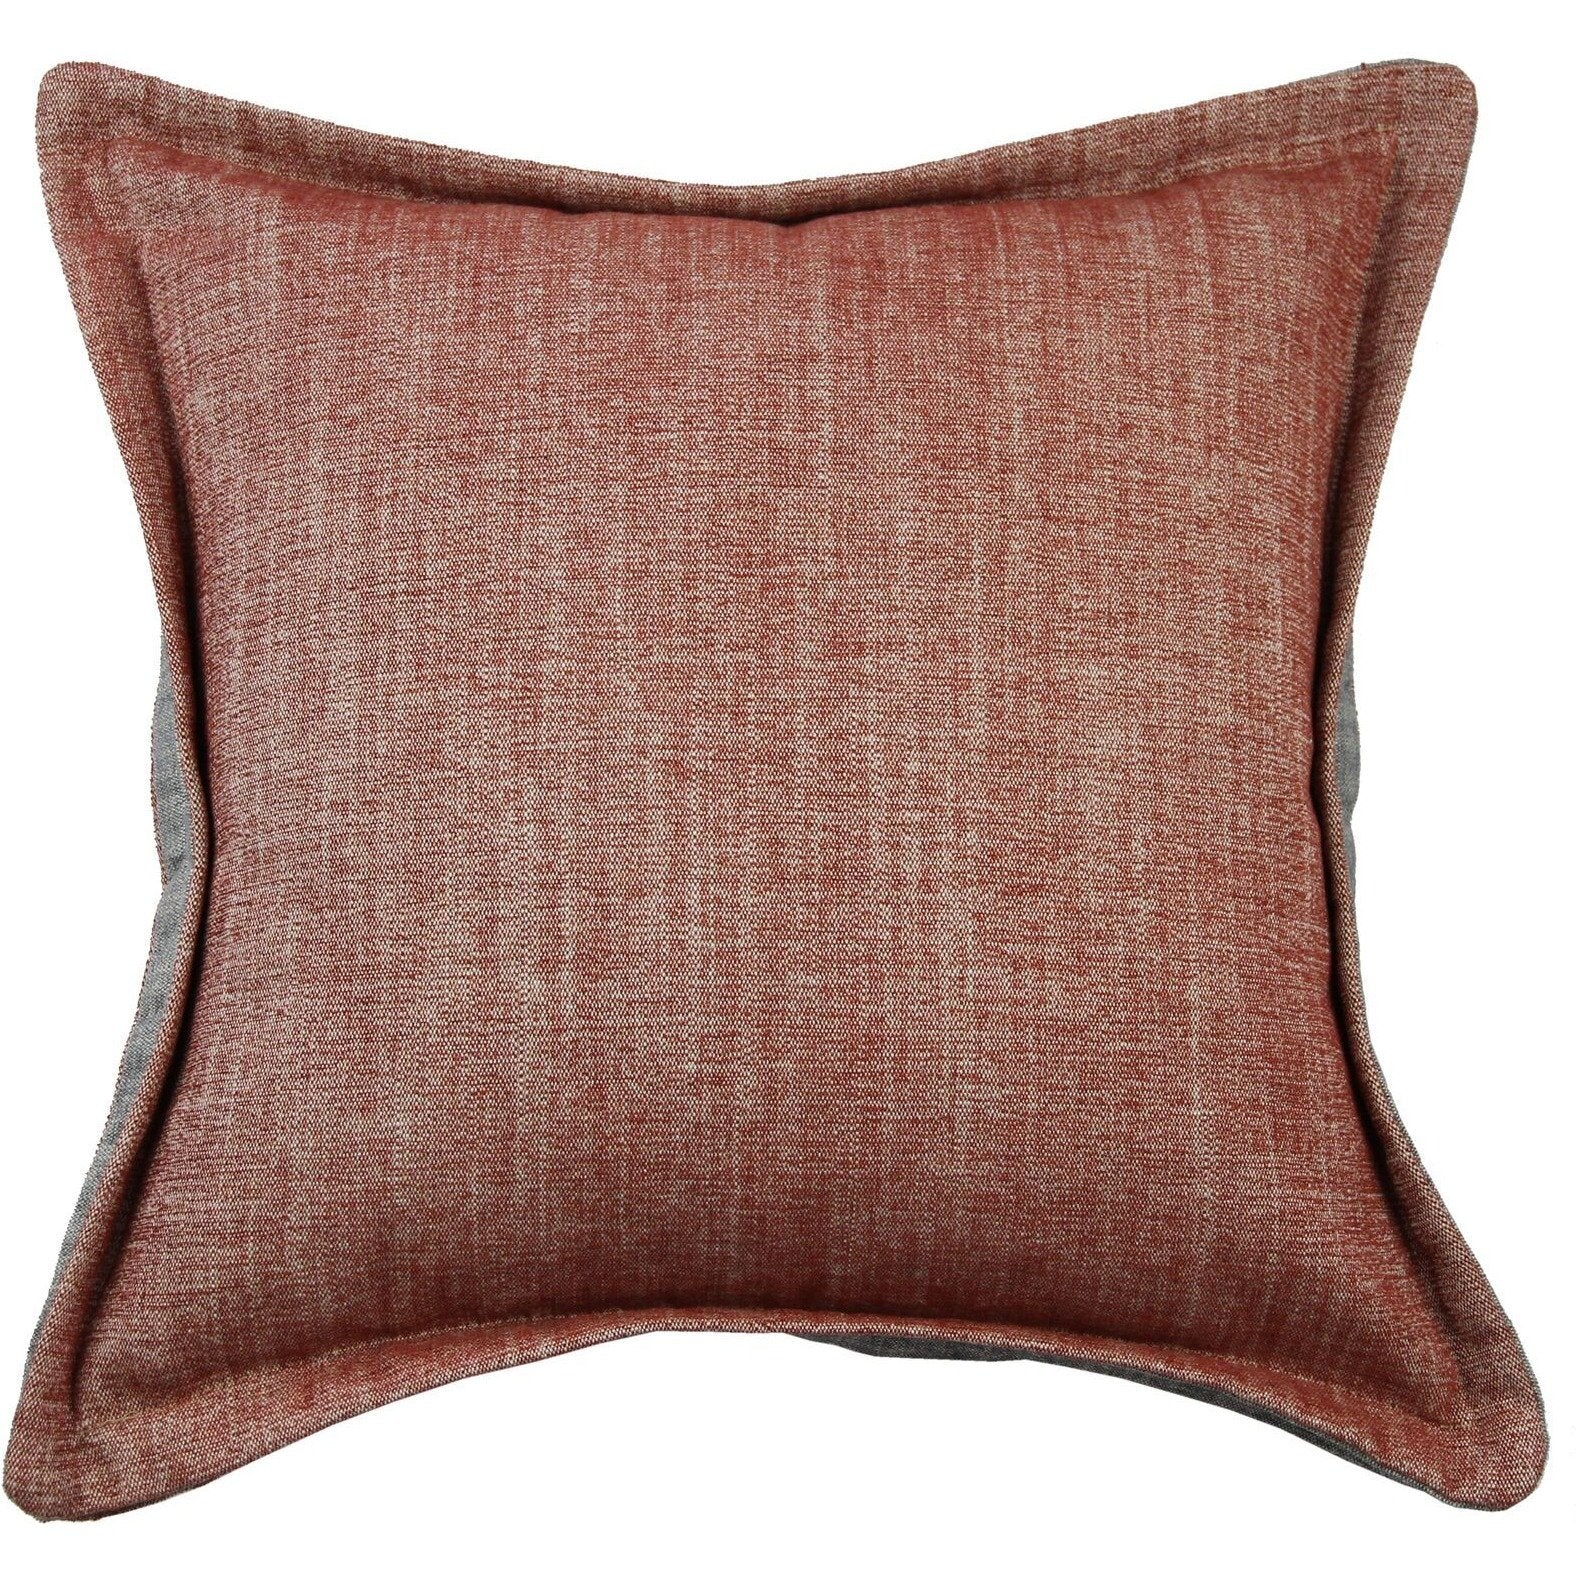 McAlister Textiles Rhumba Accent Burnt Orange + Grey Pillow Pillow Cover Only 43cm x 43cm